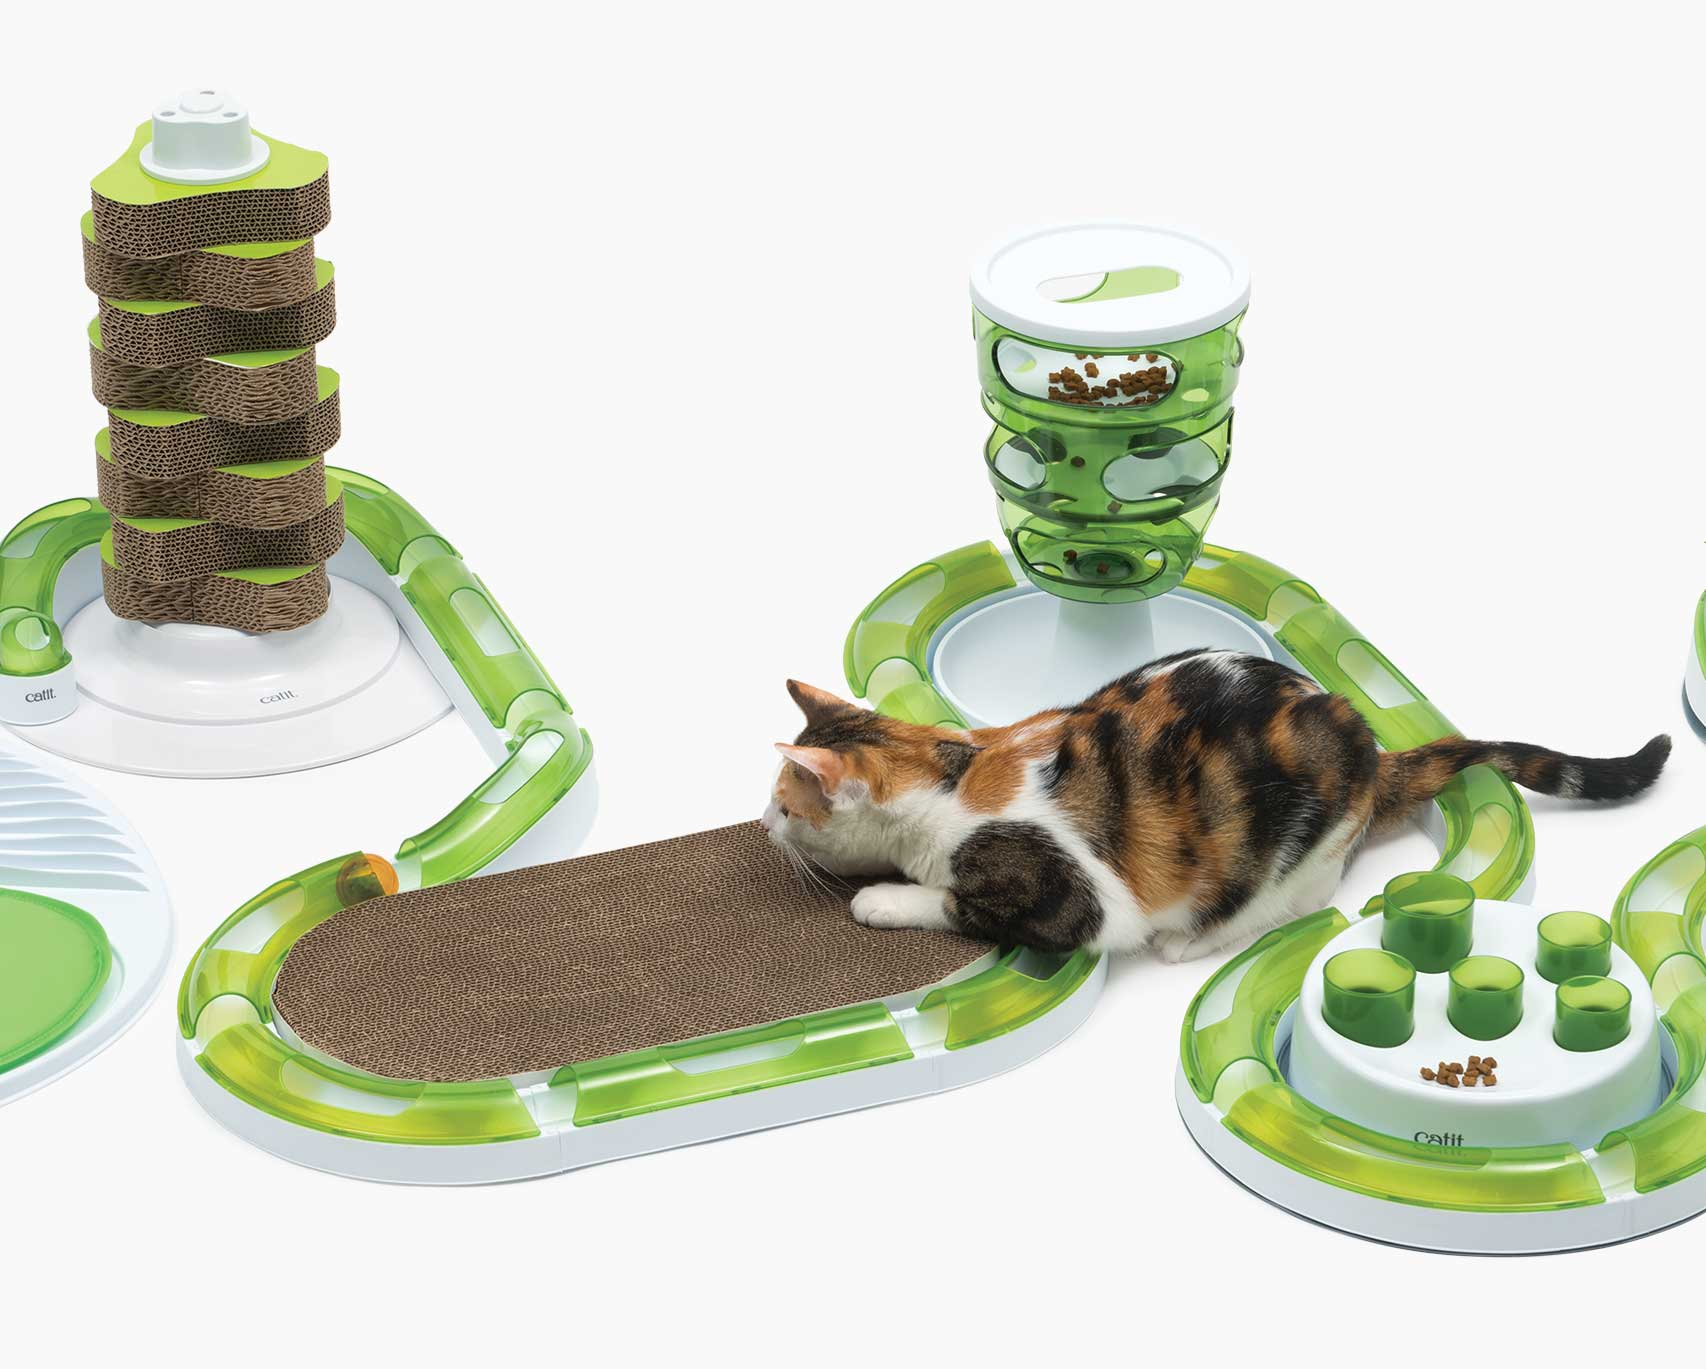 PIxi playing with the senses toys